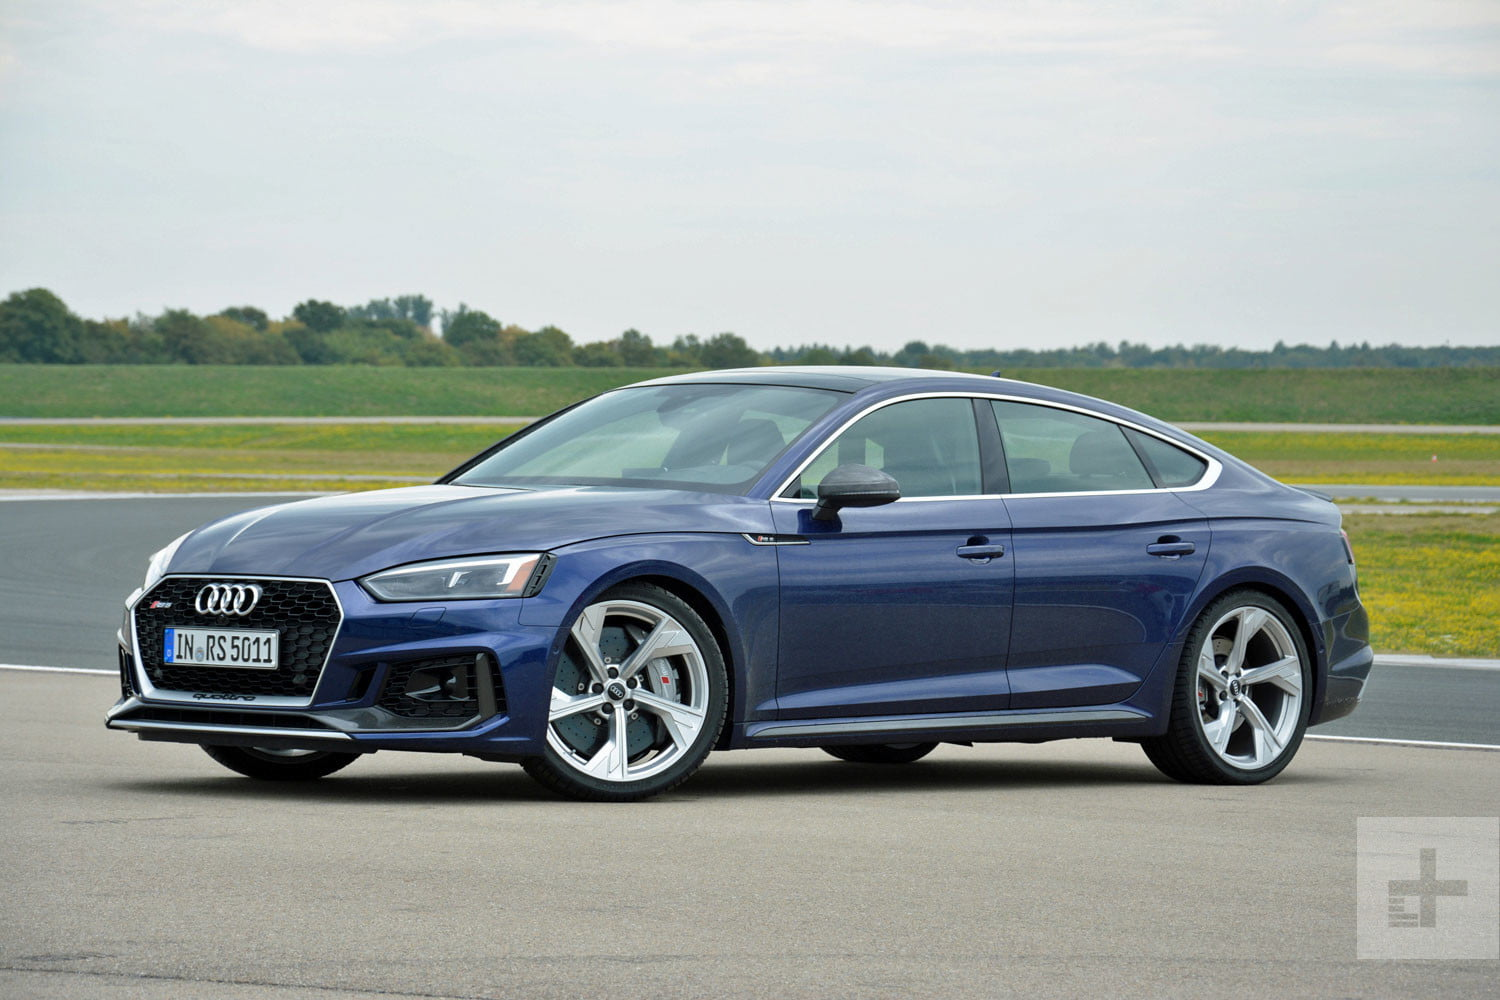 The 2019 Audi RS 5 Sportback lets you have your 444-hp cake and eat it, too